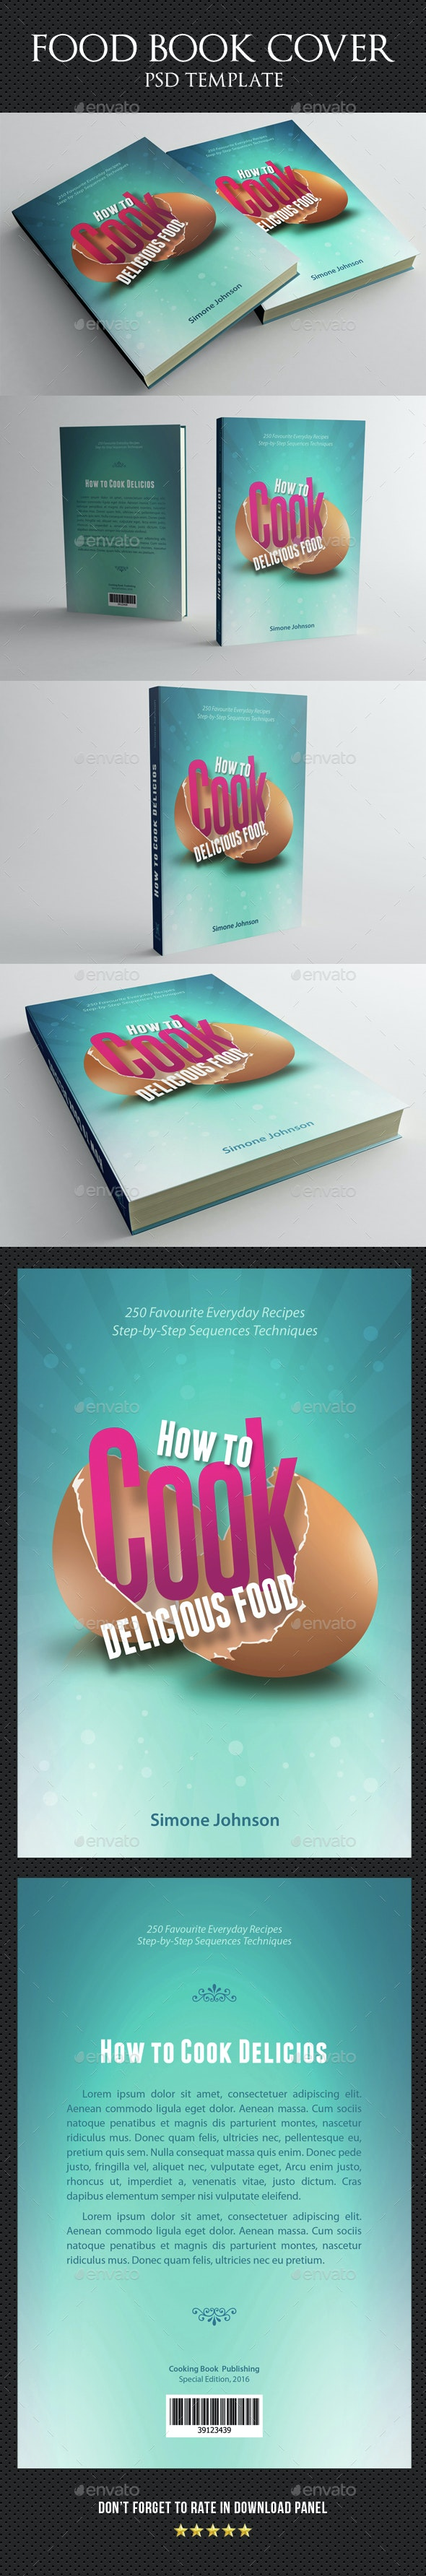 Cook Food Book Cover Template - Miscellaneous Print Templates